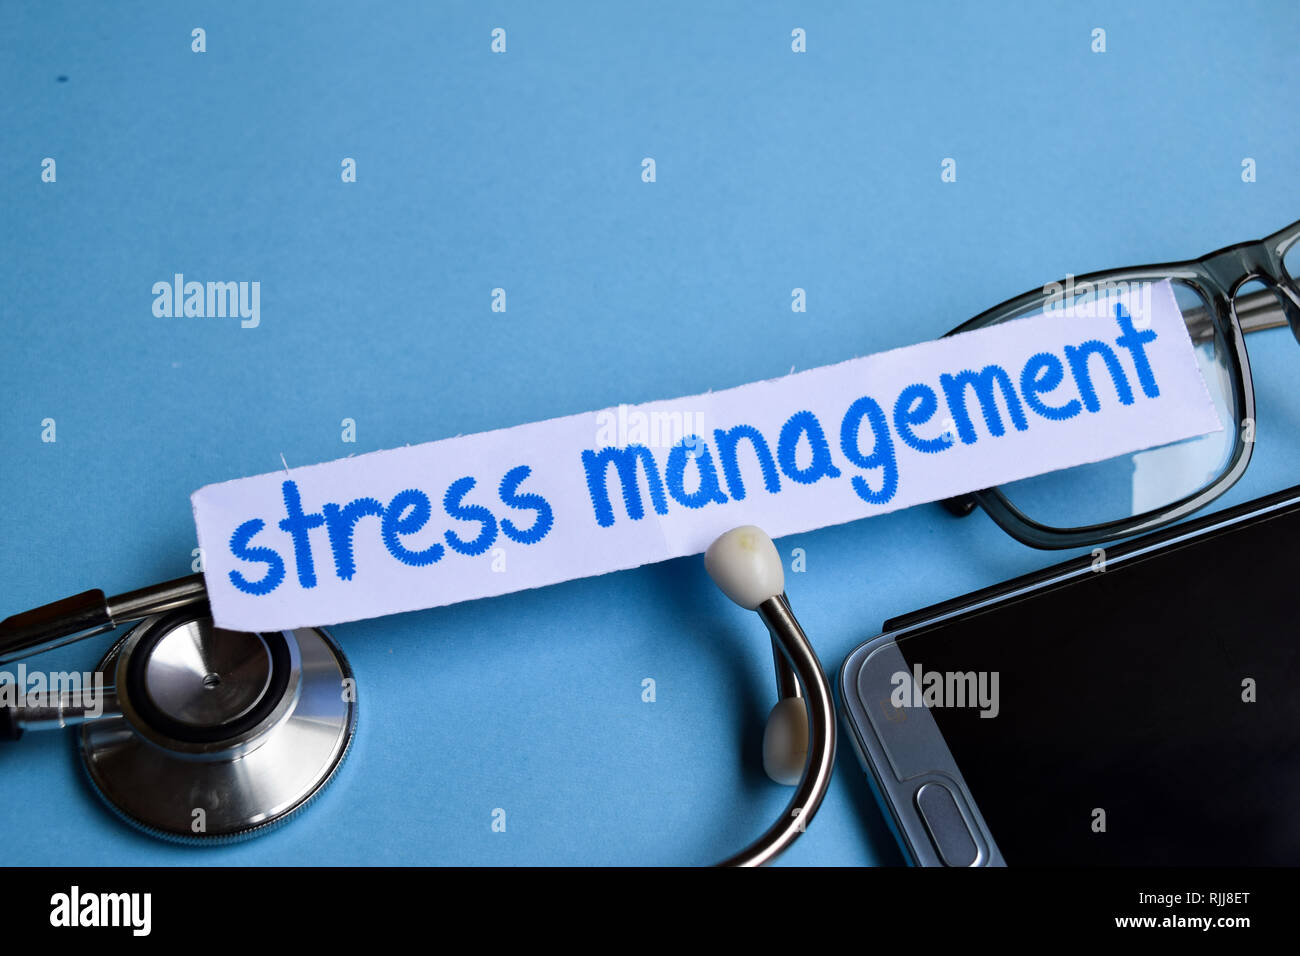 Conceptual image with Stress management inscription with the view of stethoscope, eyeglasses and smartphone on the blue background. Medical Conceptual - Stock Image